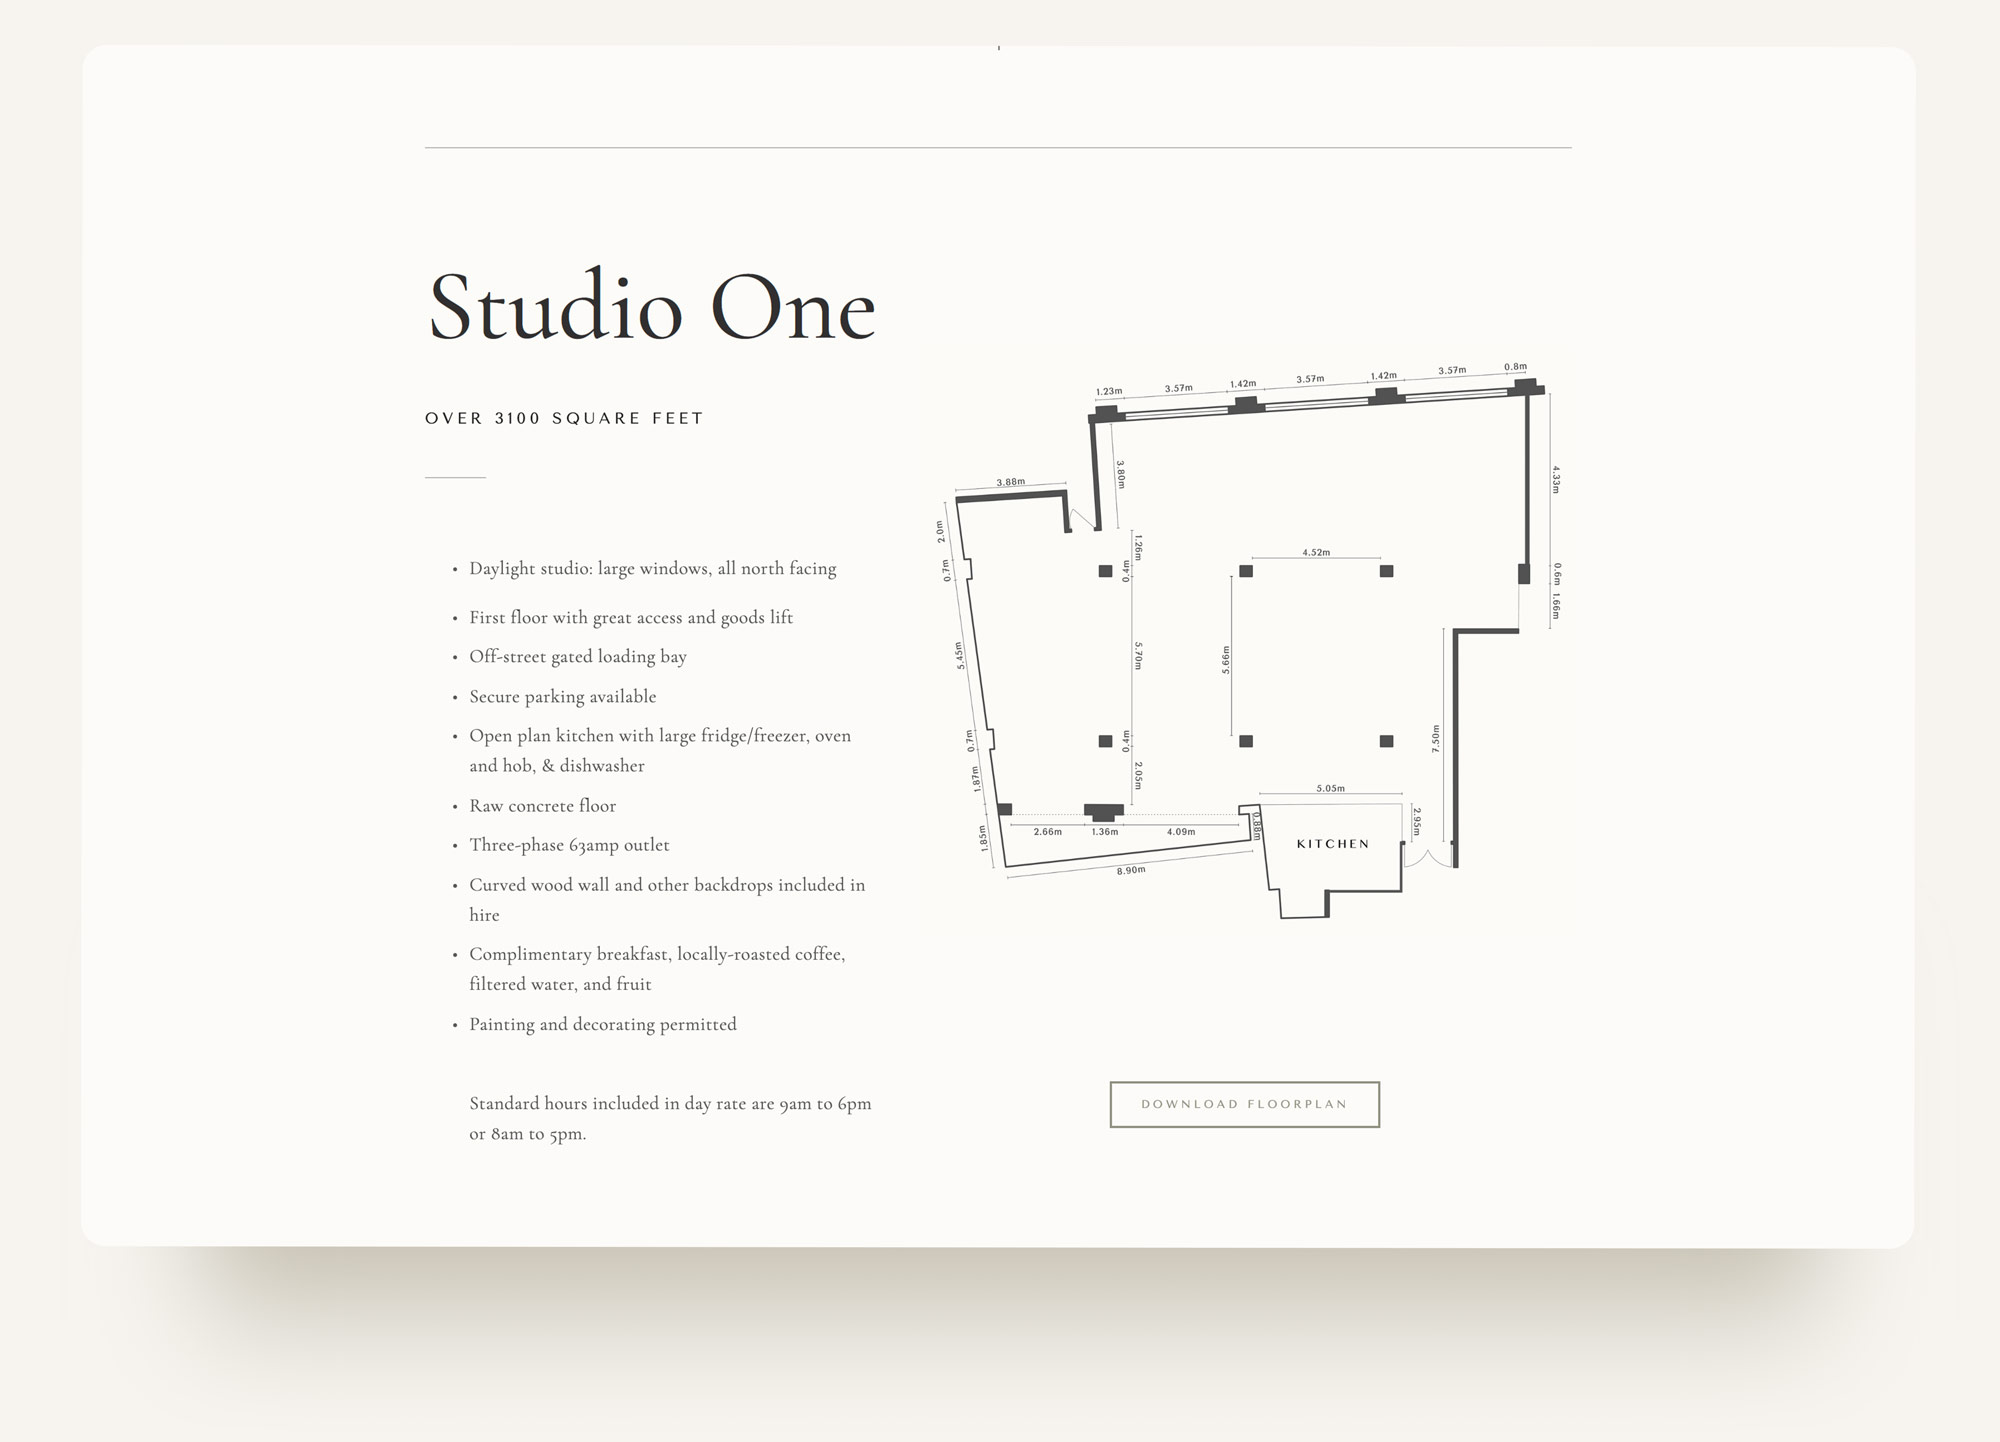 Studio specs and floorplan download on Archway Depot website. Squarespace design by Brittany Hurdle beckon webeckon